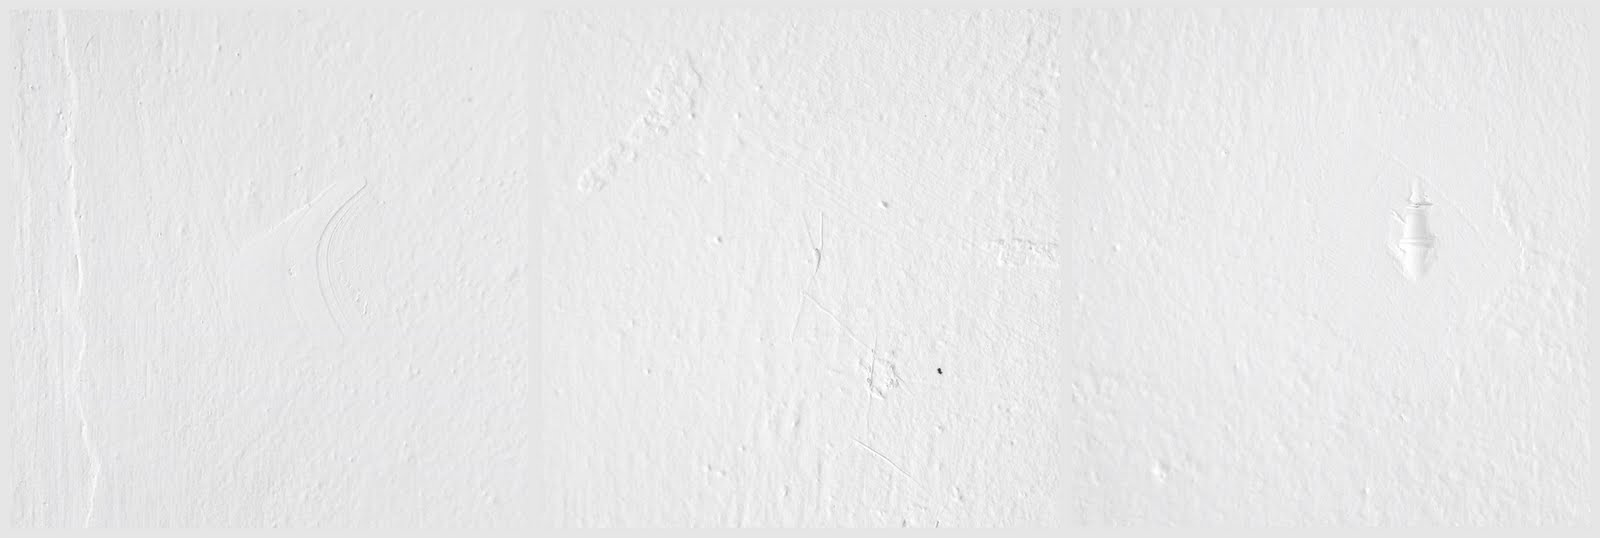 Mursejlerne Details Of A White Wall